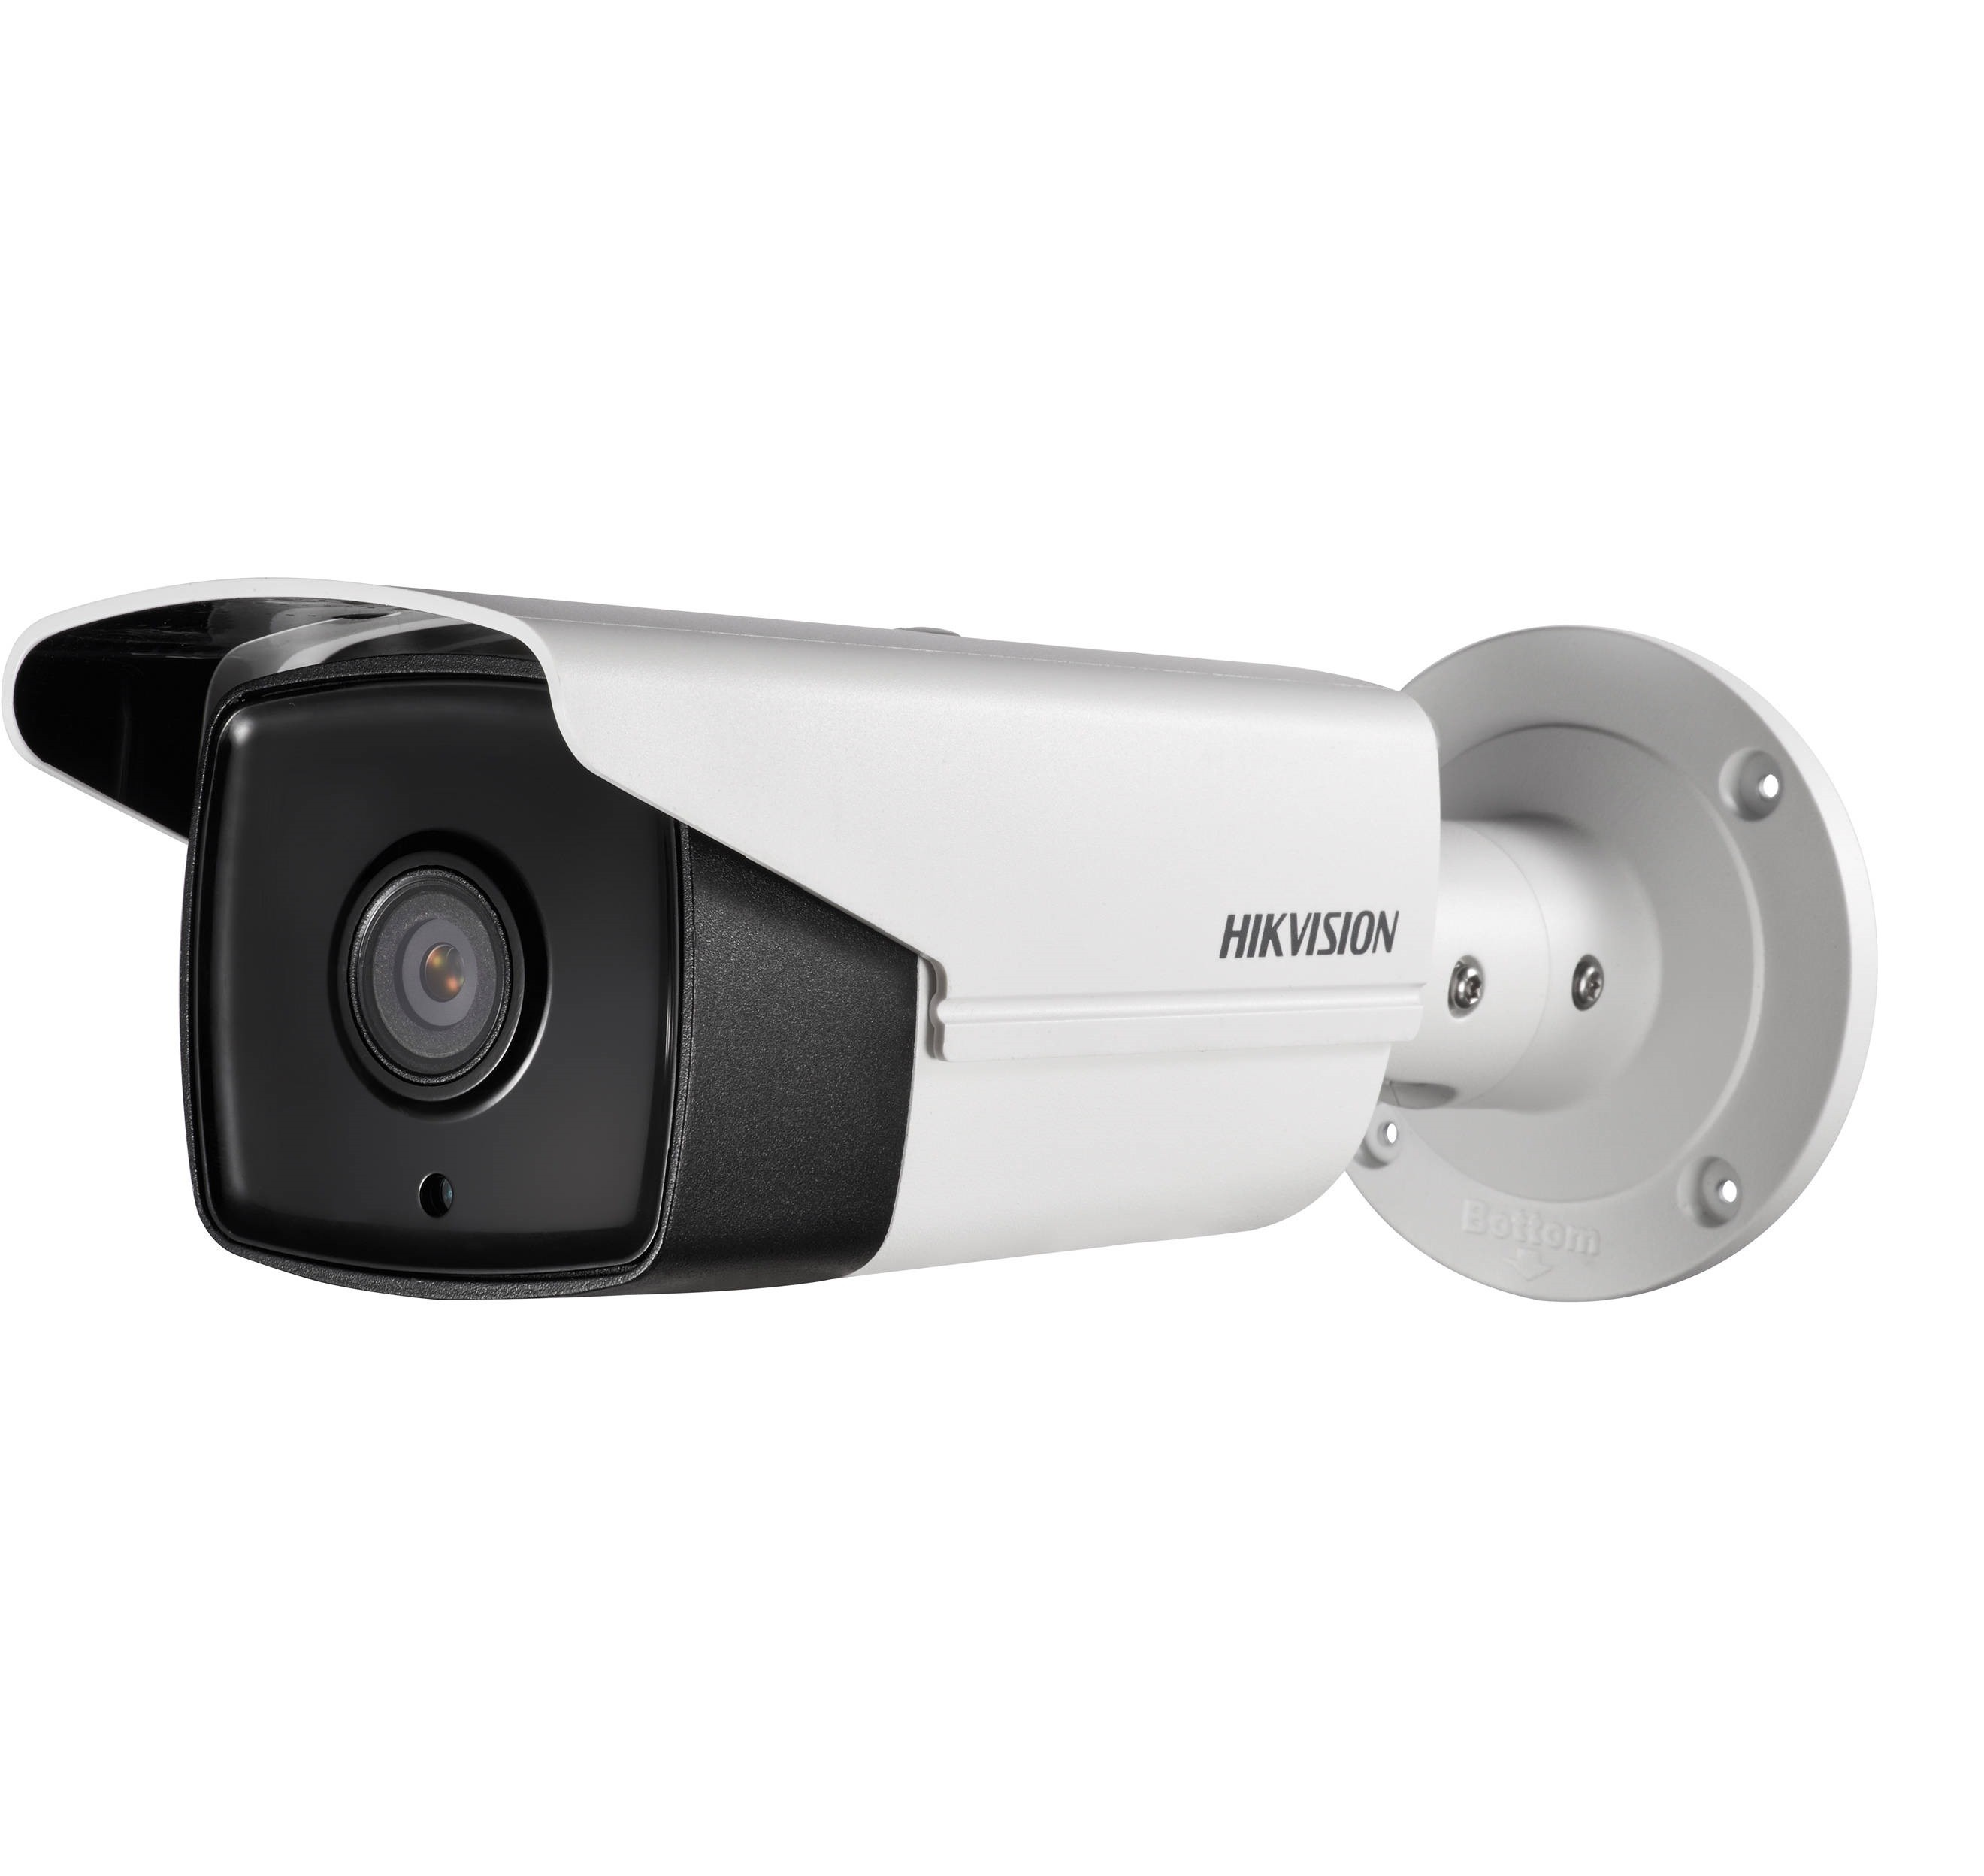 Hikvision DS-2CD4A26FWD-IZHS8-P 2 Megapixel Network Outdoor